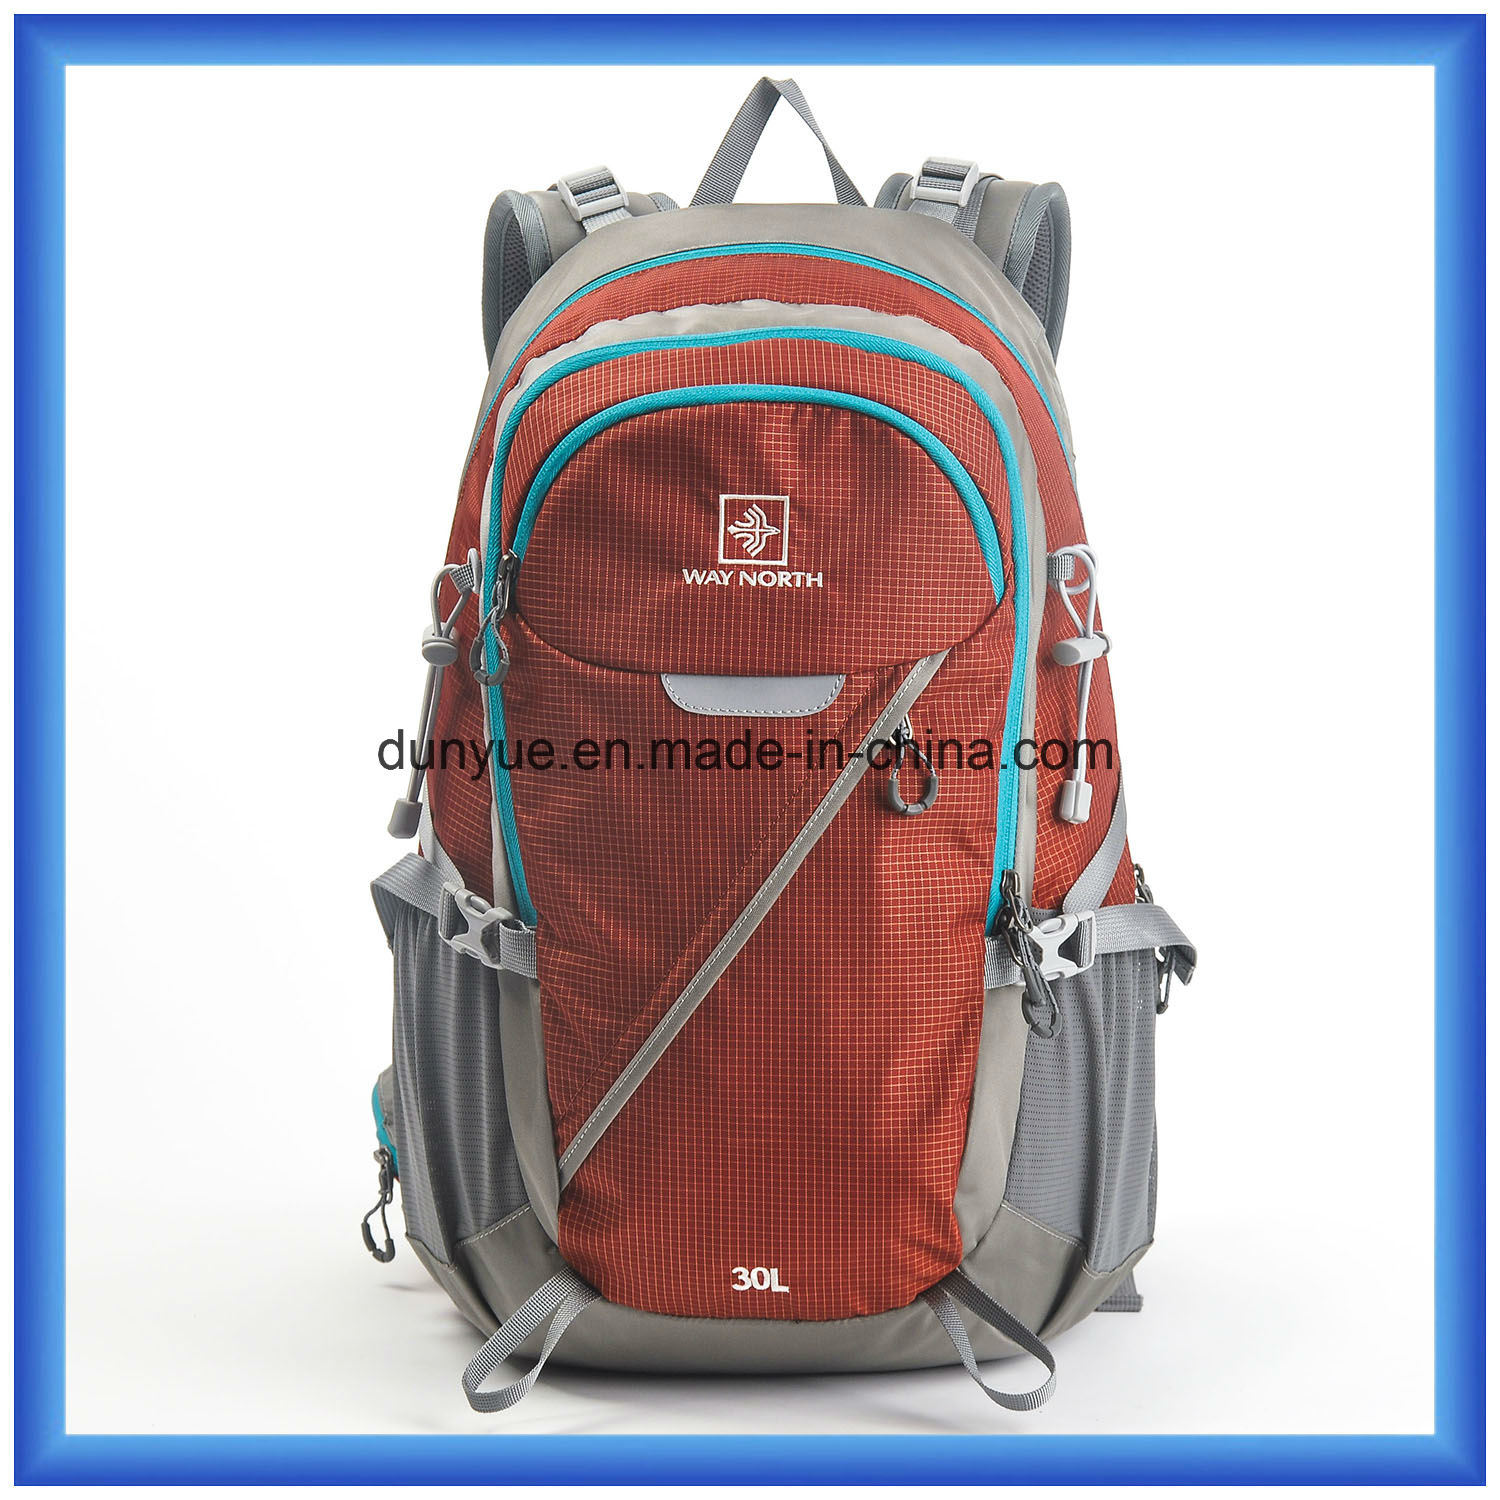 Hot Sale Customized Waterproof Travel Backpack, Nylon Outdoor Sports Backpack Bag, Practical Climbing Hiking Backpack